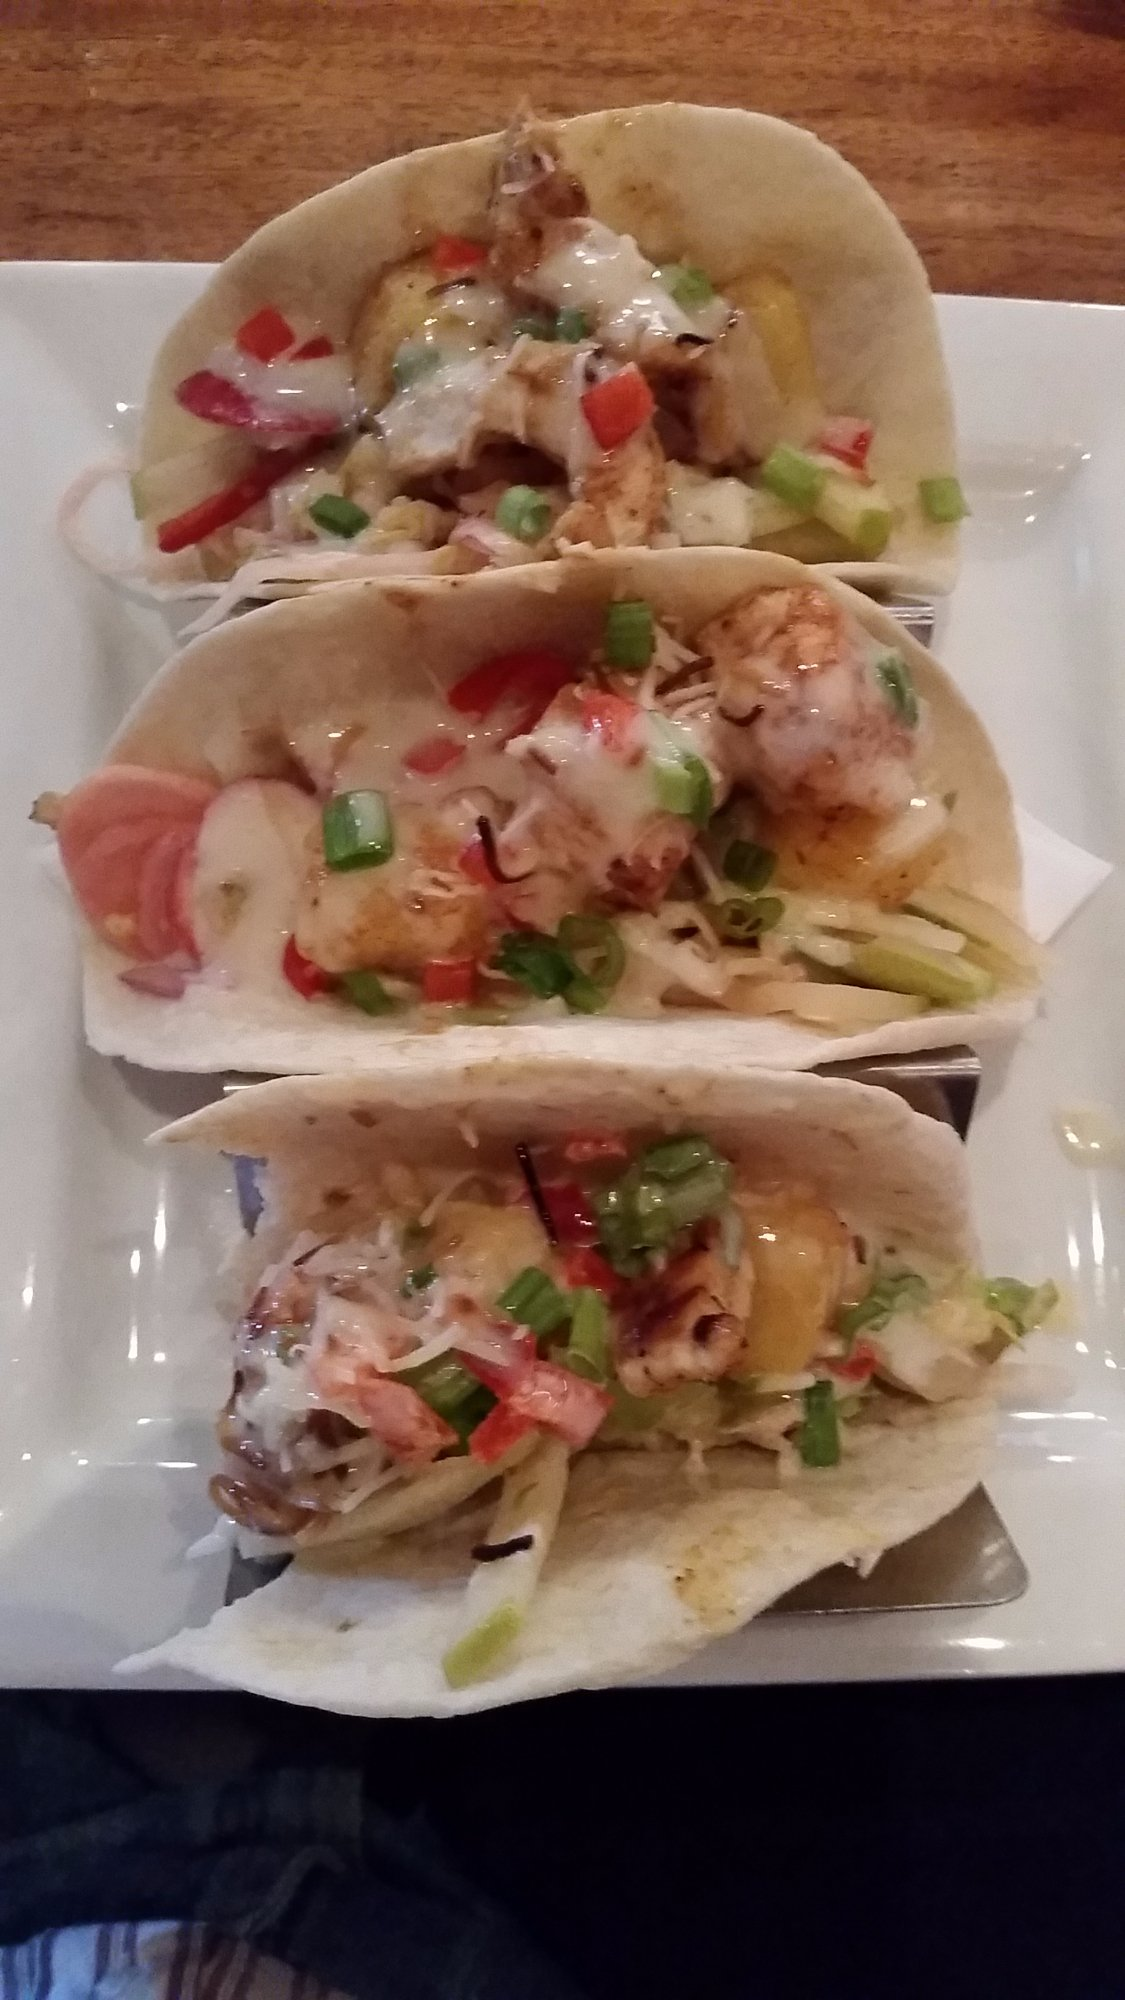 My Island Topper Tacos minus a bite. Eat them slow as you get to taste each element separately a